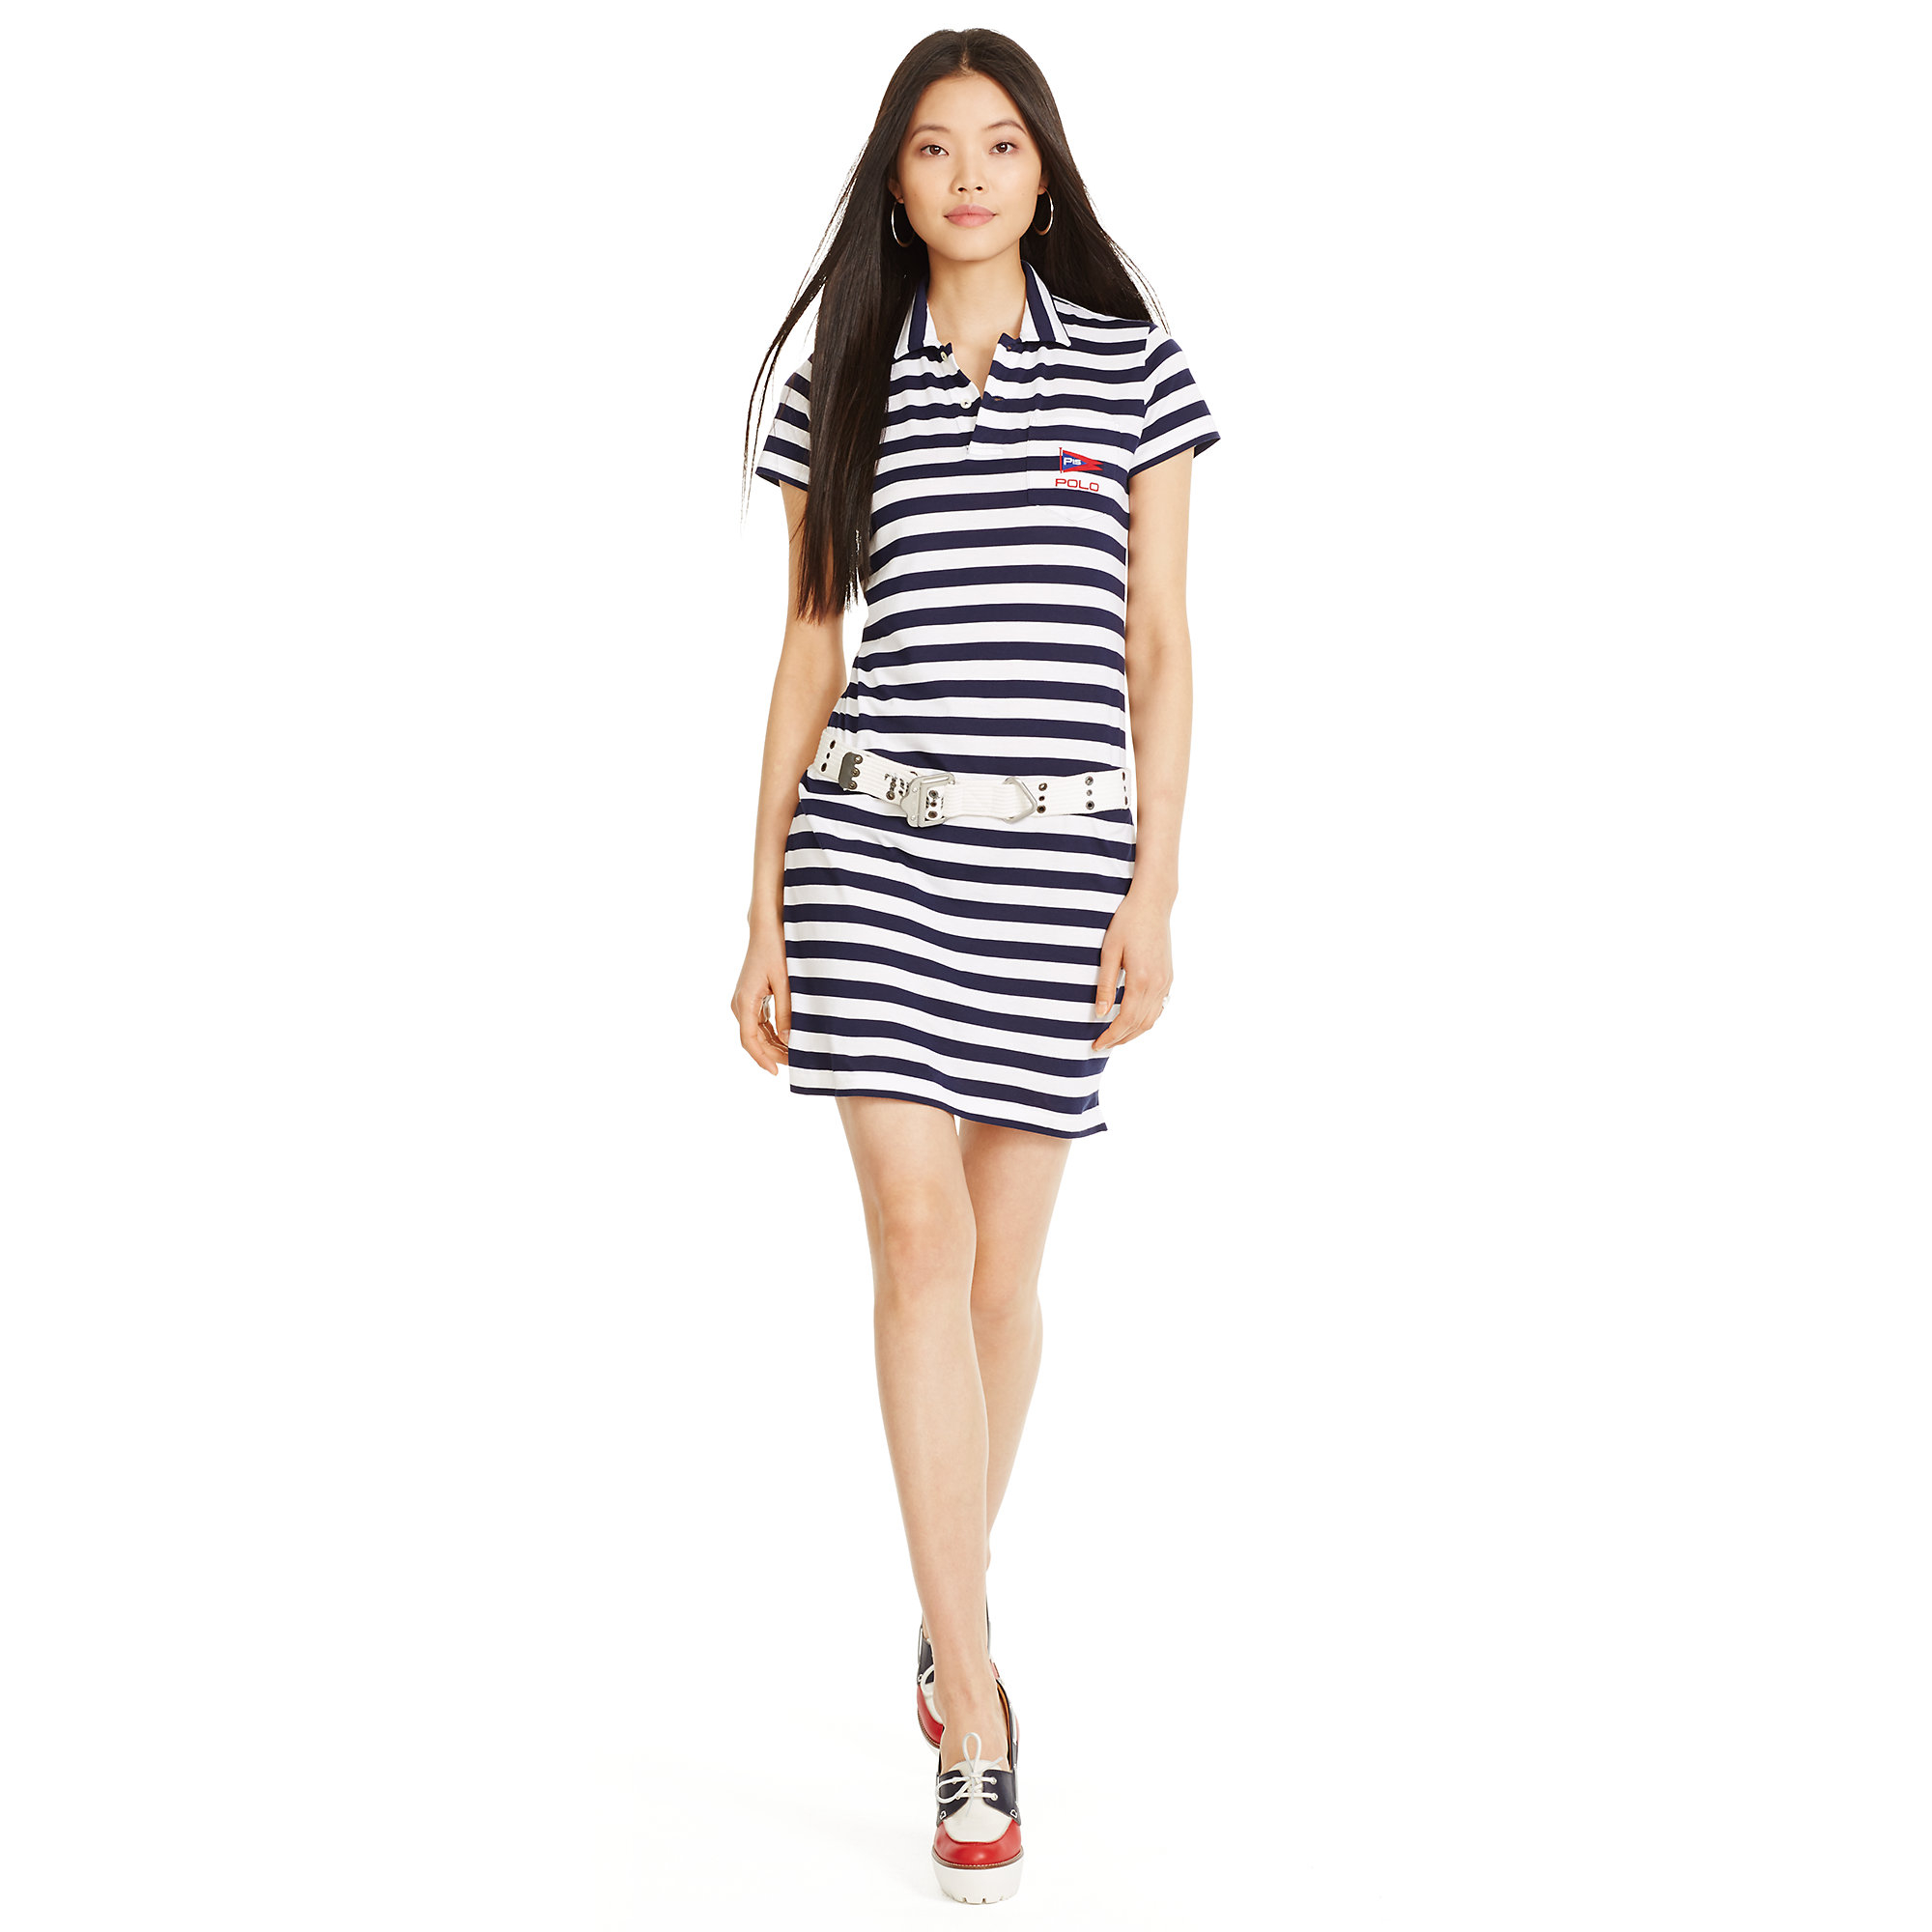 Women's Blue Striped Shirt Dress See more Polo Ralph Lauren Dresses. Striped Cotton Dress $ $ (50% off) 24software.ml Lilly Pulitzer Anne Dress $ Blue and white cotton striped shirt dress from Polo Ralph Lauren. Color: blue Gallery. Previously sold at: Farfetch. Follow 24software.ml: $